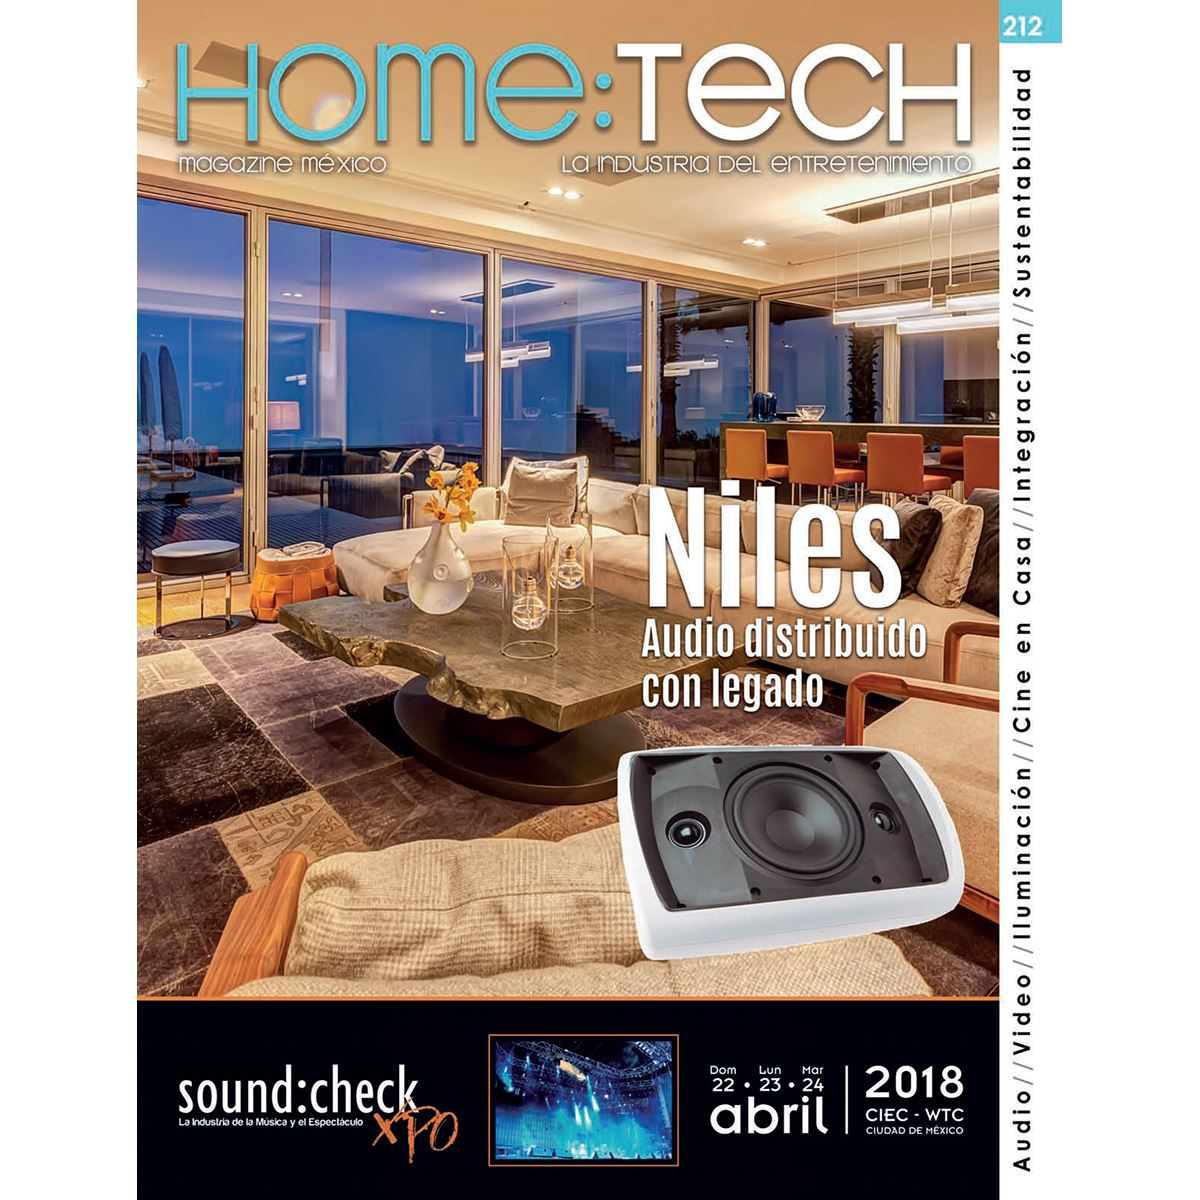 Home:tech magazine Libro - Sanborns